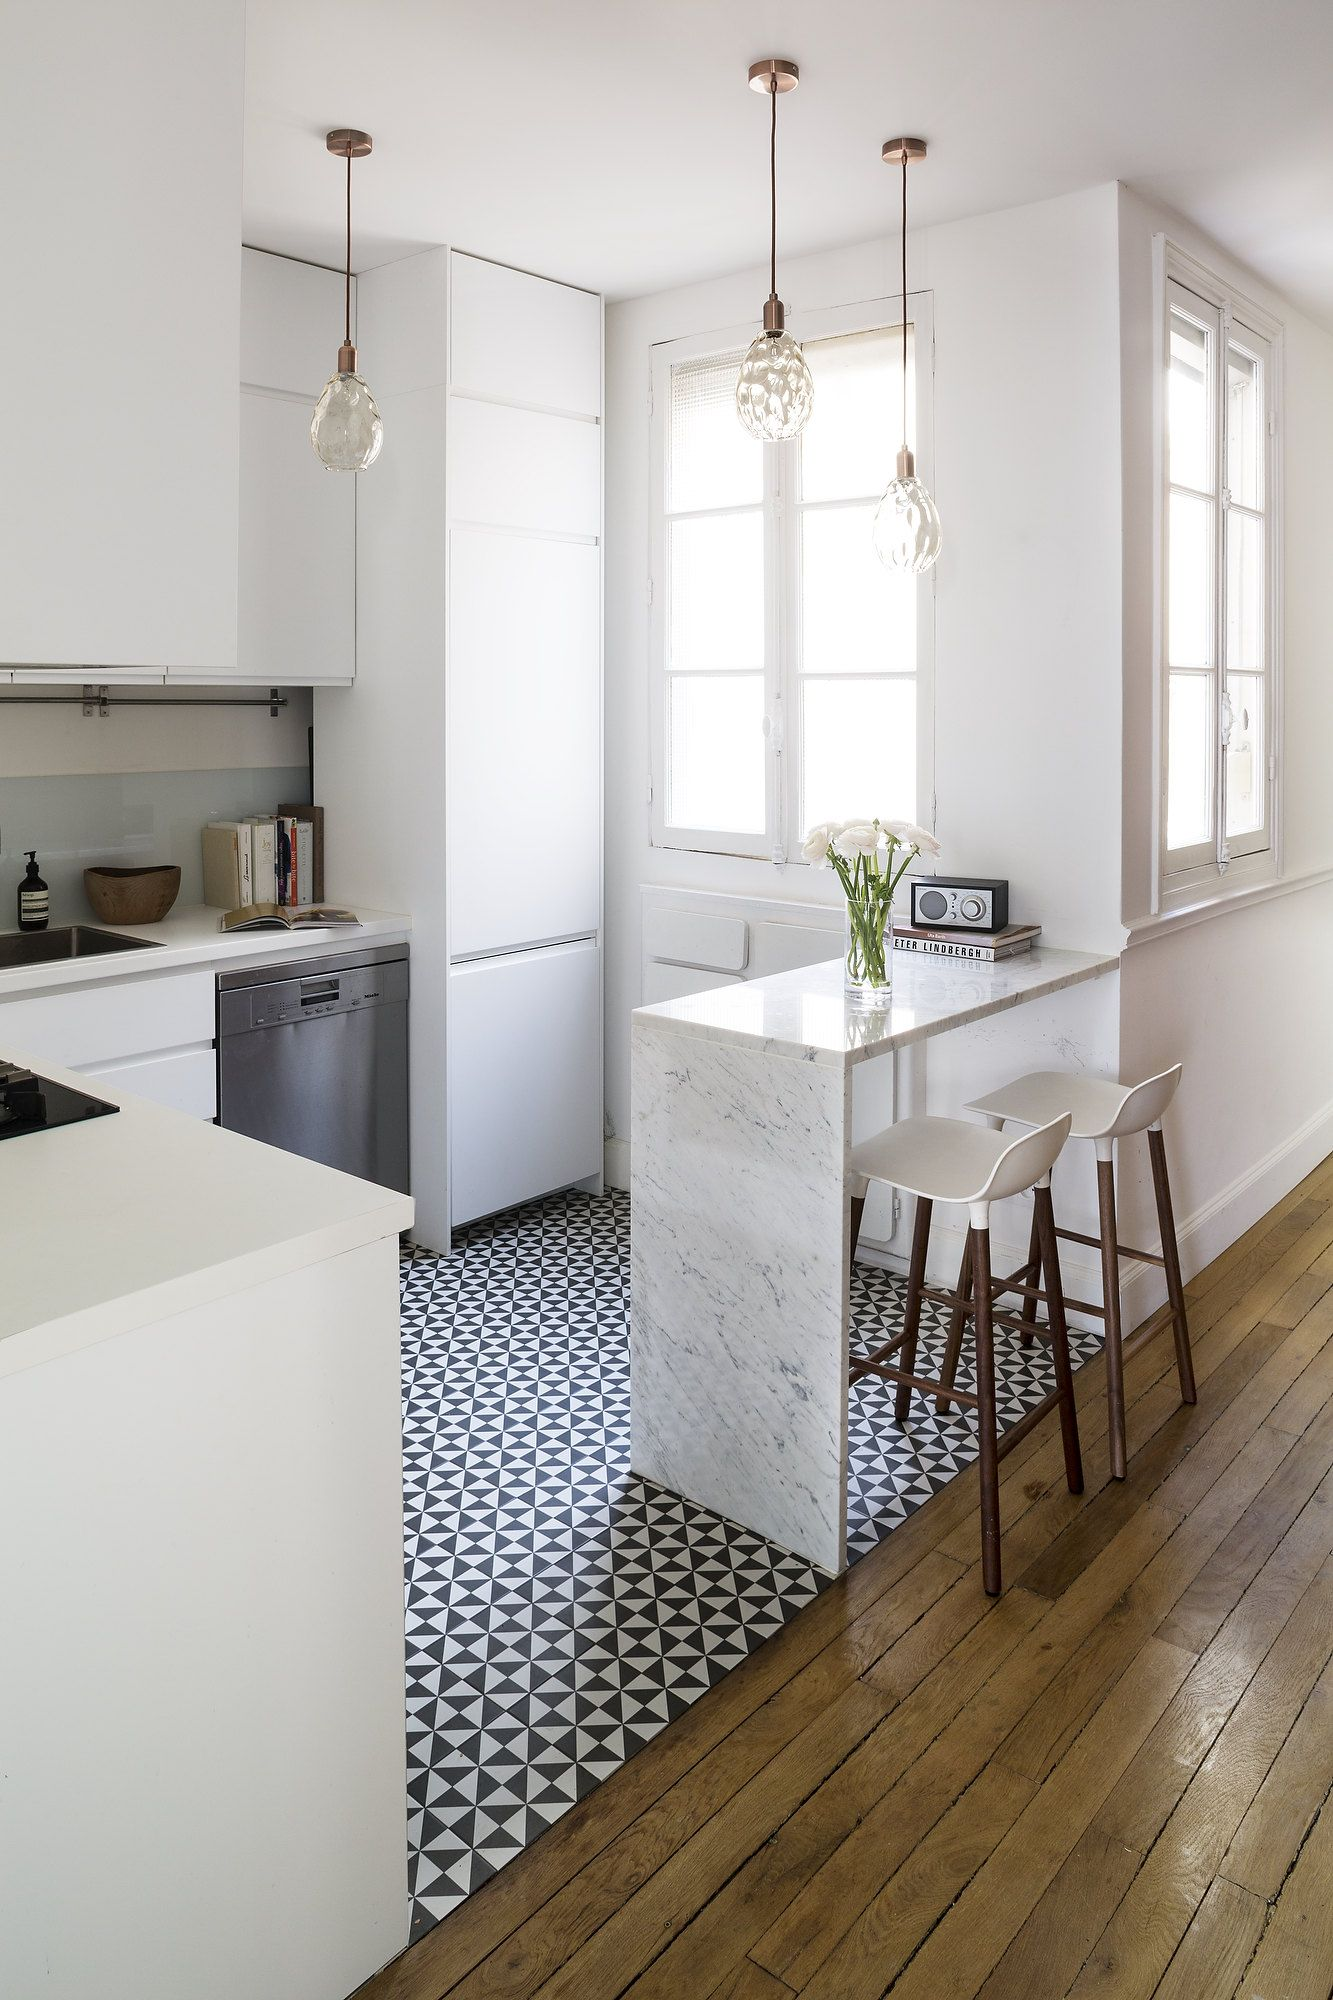 This Chic Paris Apartment Is a Perfect Mix of Old & New   Small ...